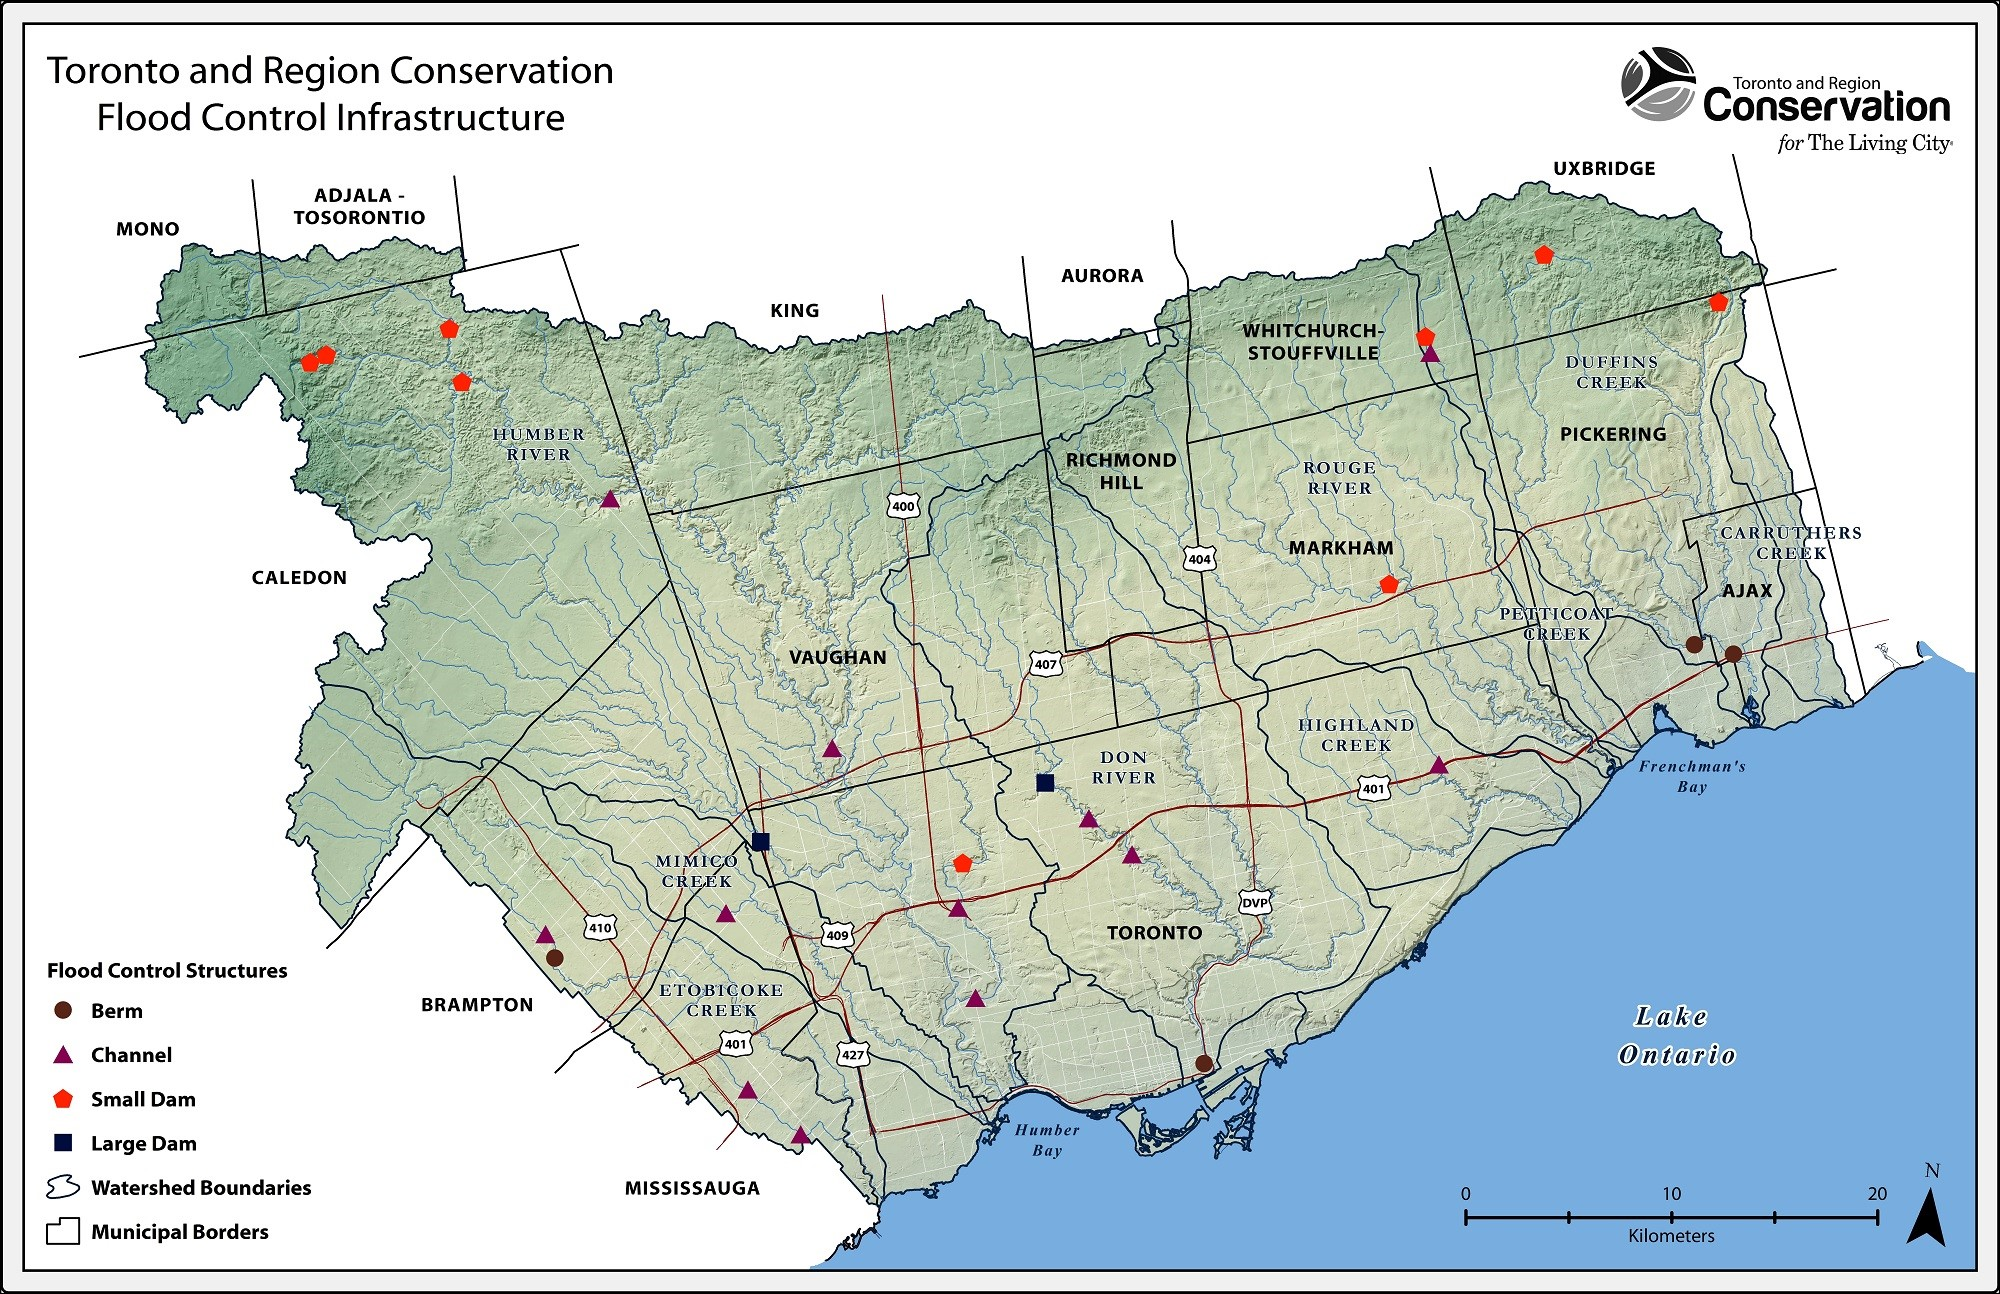 TRCA Flood Control Map